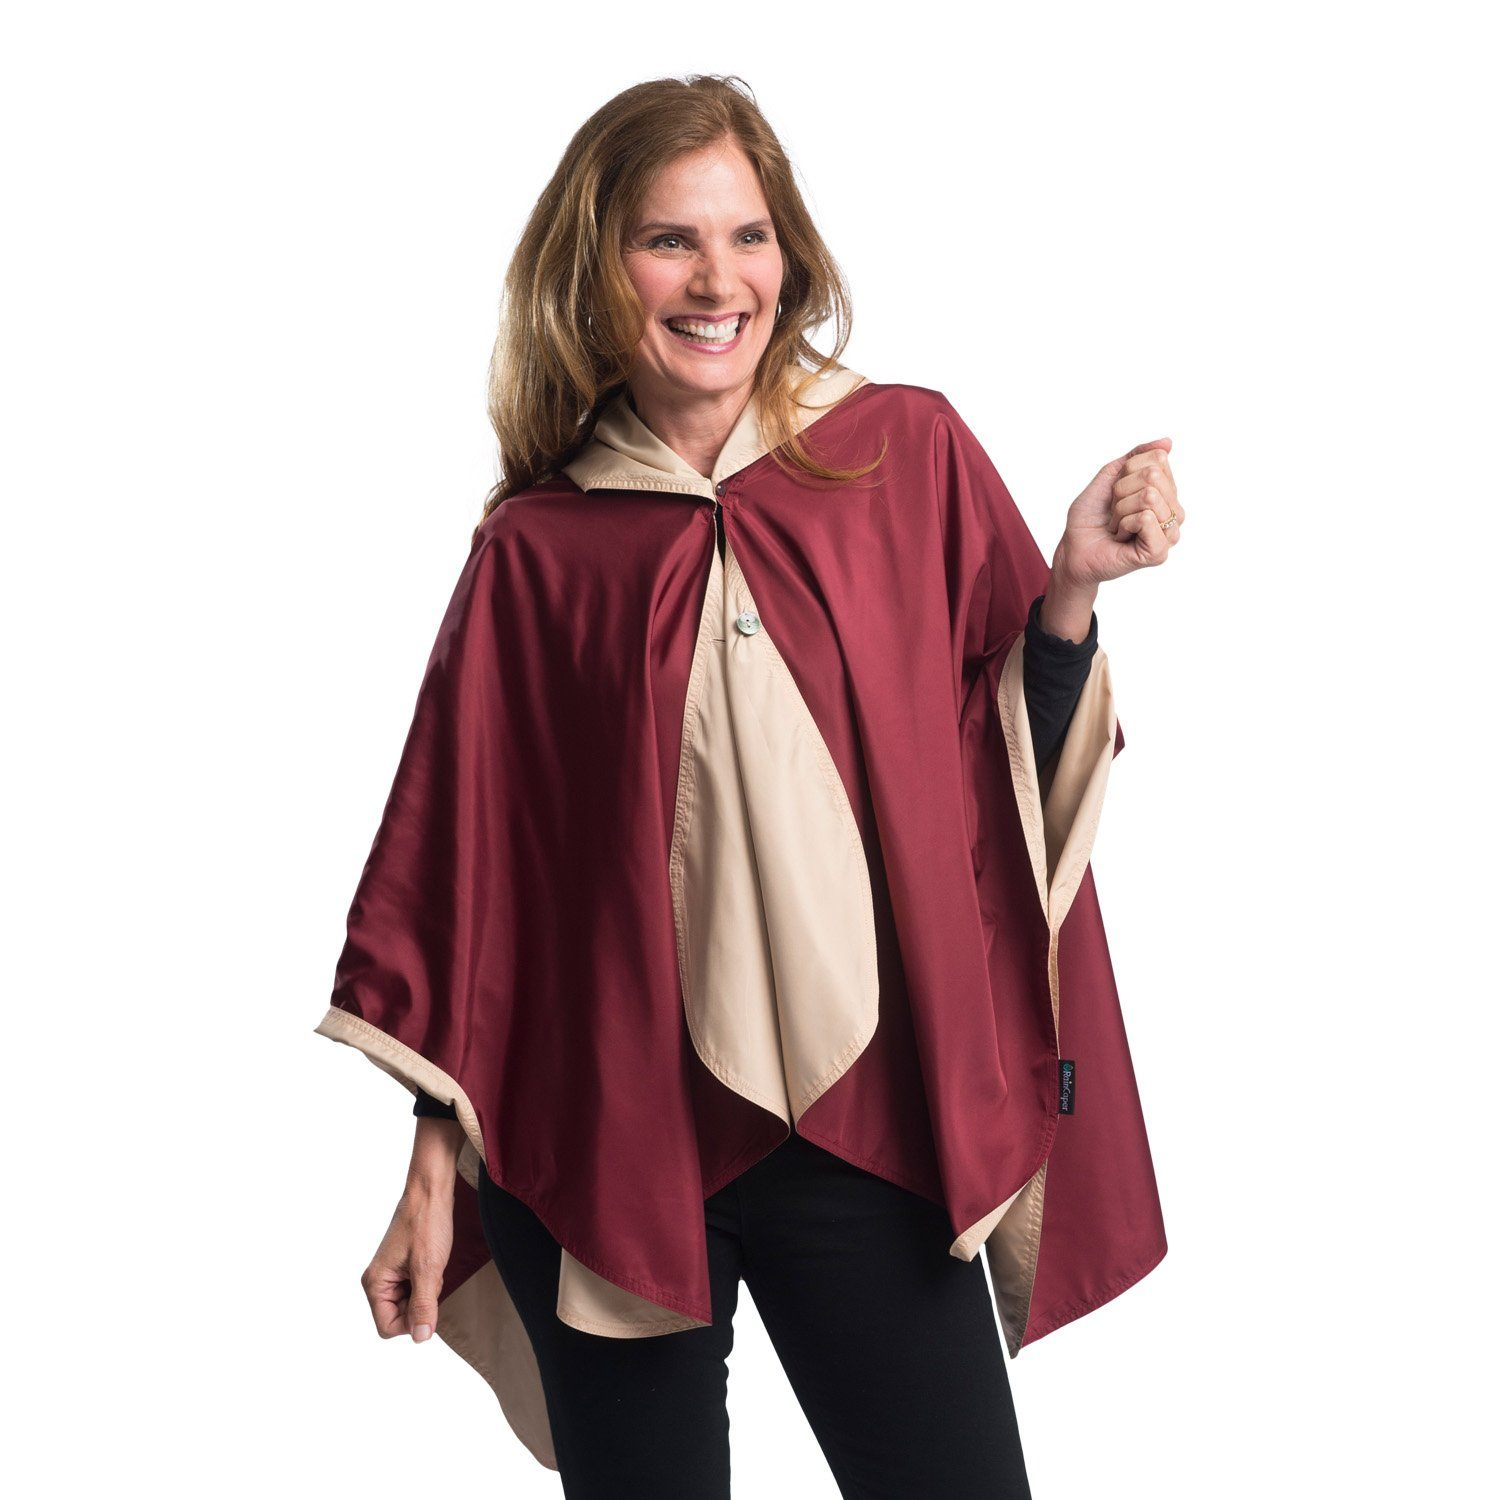 Woman wearing a Garnet & Gold Wind & Rainproof Cape with the Garnet side out, revealing the Gold print at the lapels,neckline and cuffs